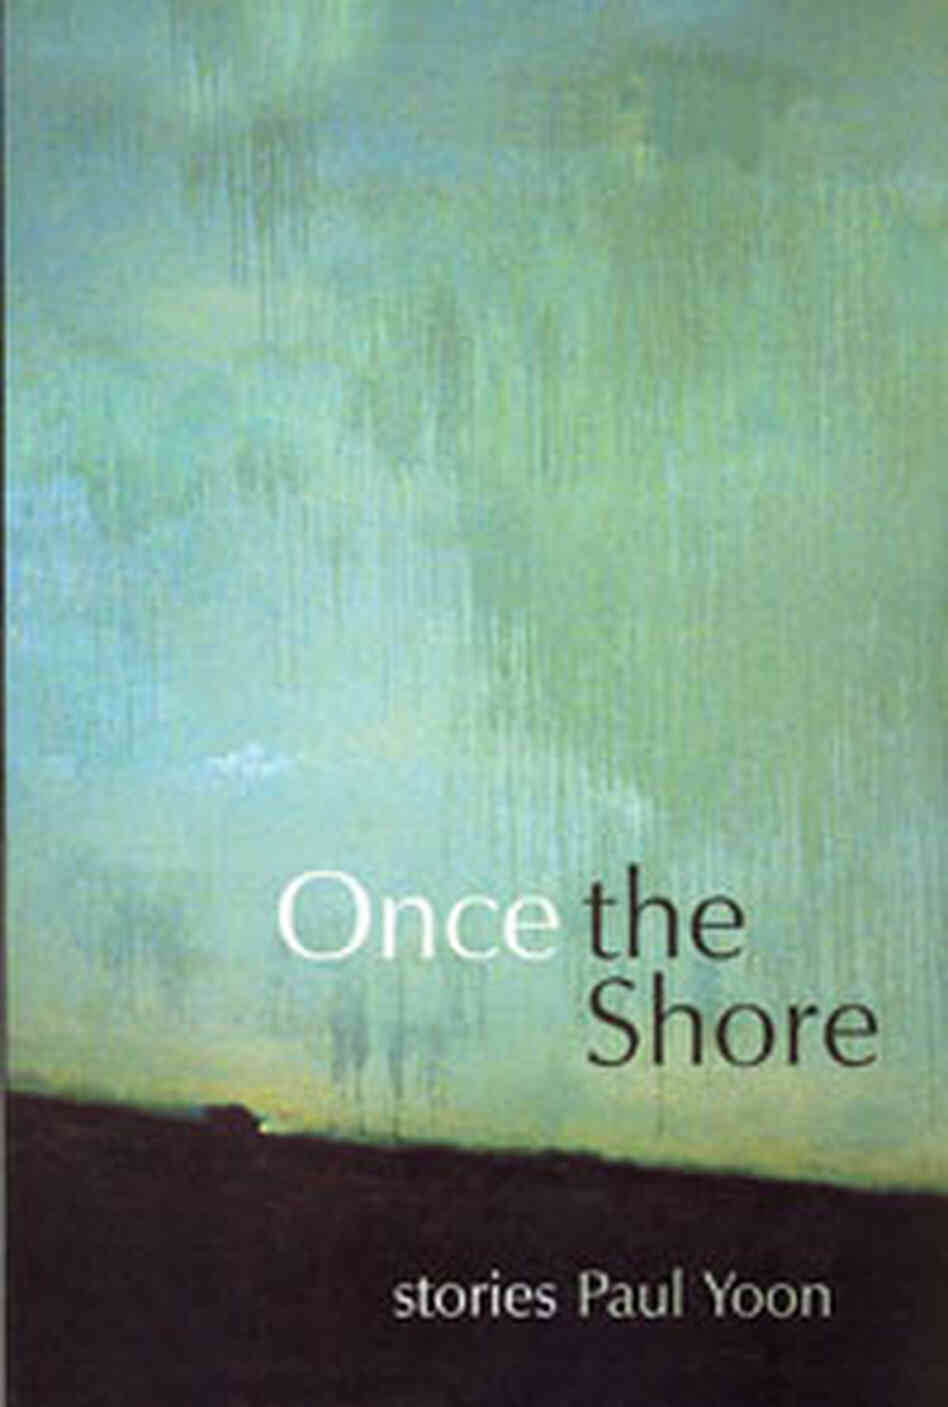 Paul Yoon's 'Once the Shore'